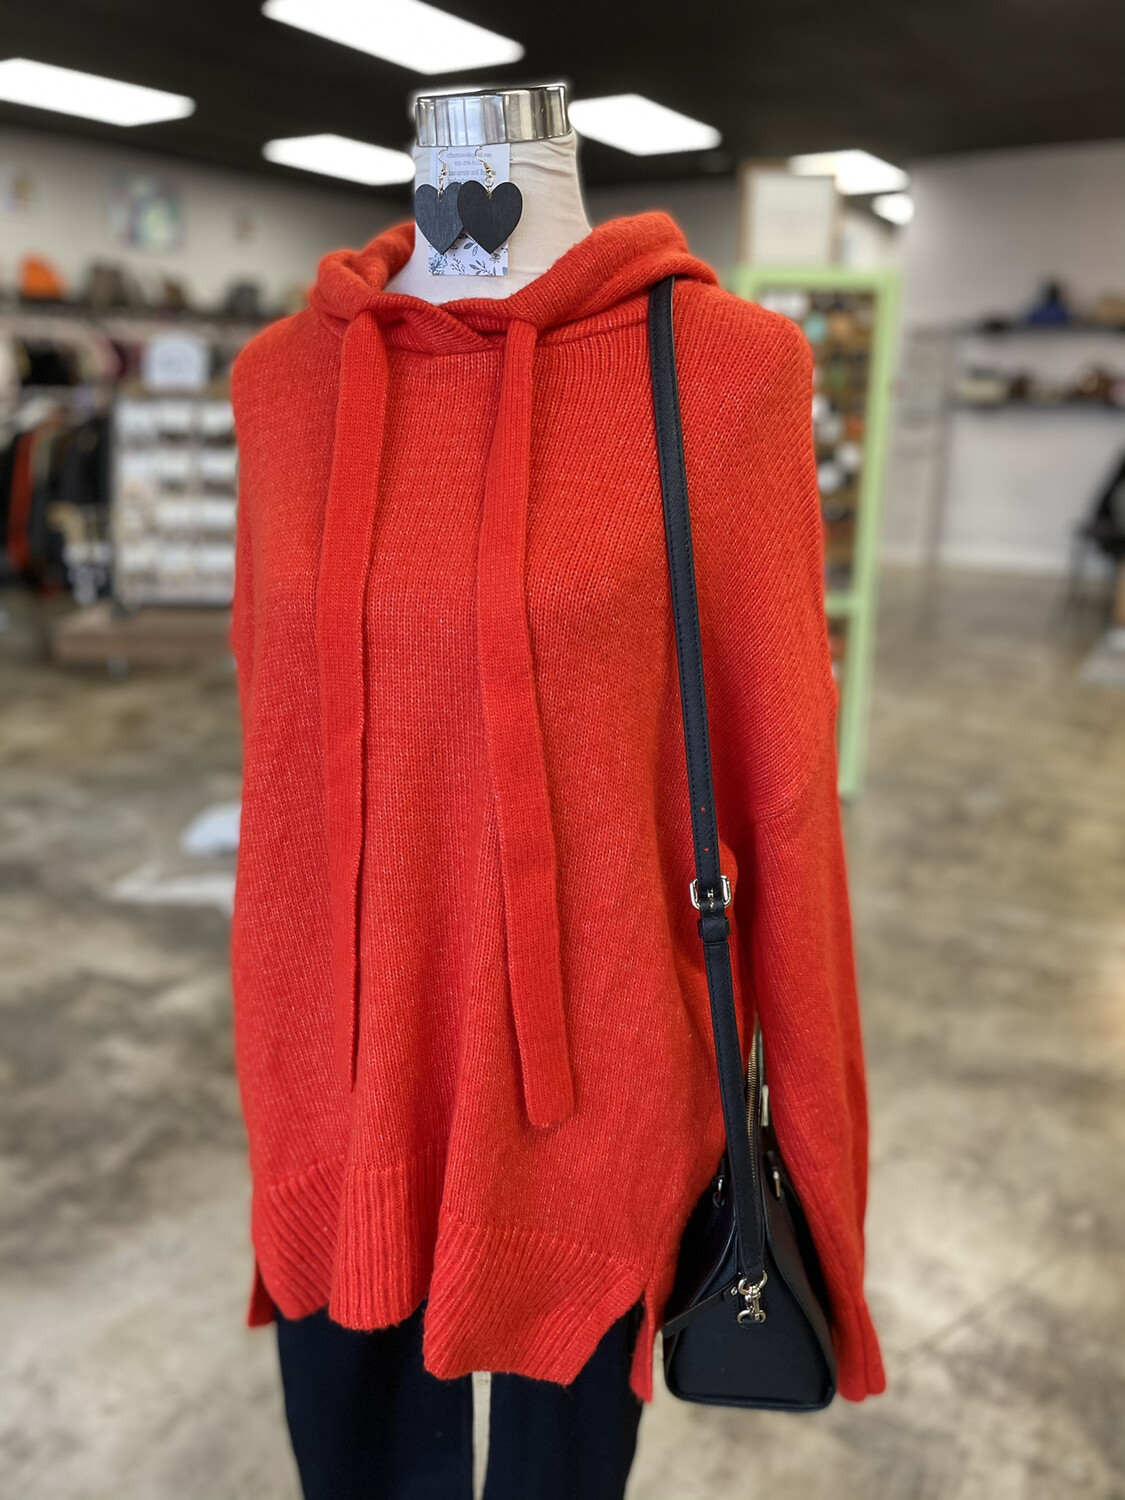 L.O.G.G. Red Hooded Pullover - S